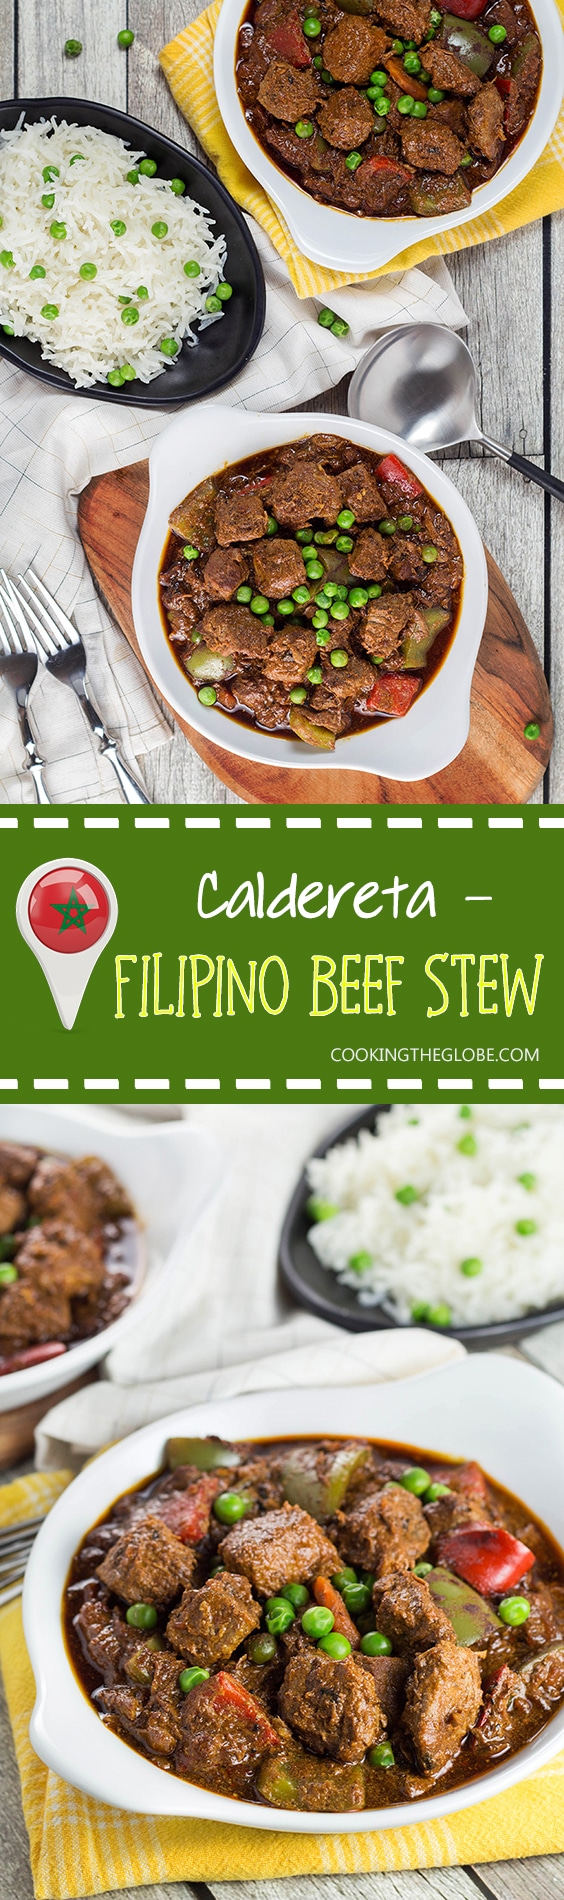 Beef Caldereta is a tomato sauce, red wine, and soy sauce based stew coming from the Philippines. But what sets it apart from other stews is the addition of liver pâté! Intrigued? Check it out! | cookingtheglobe.com